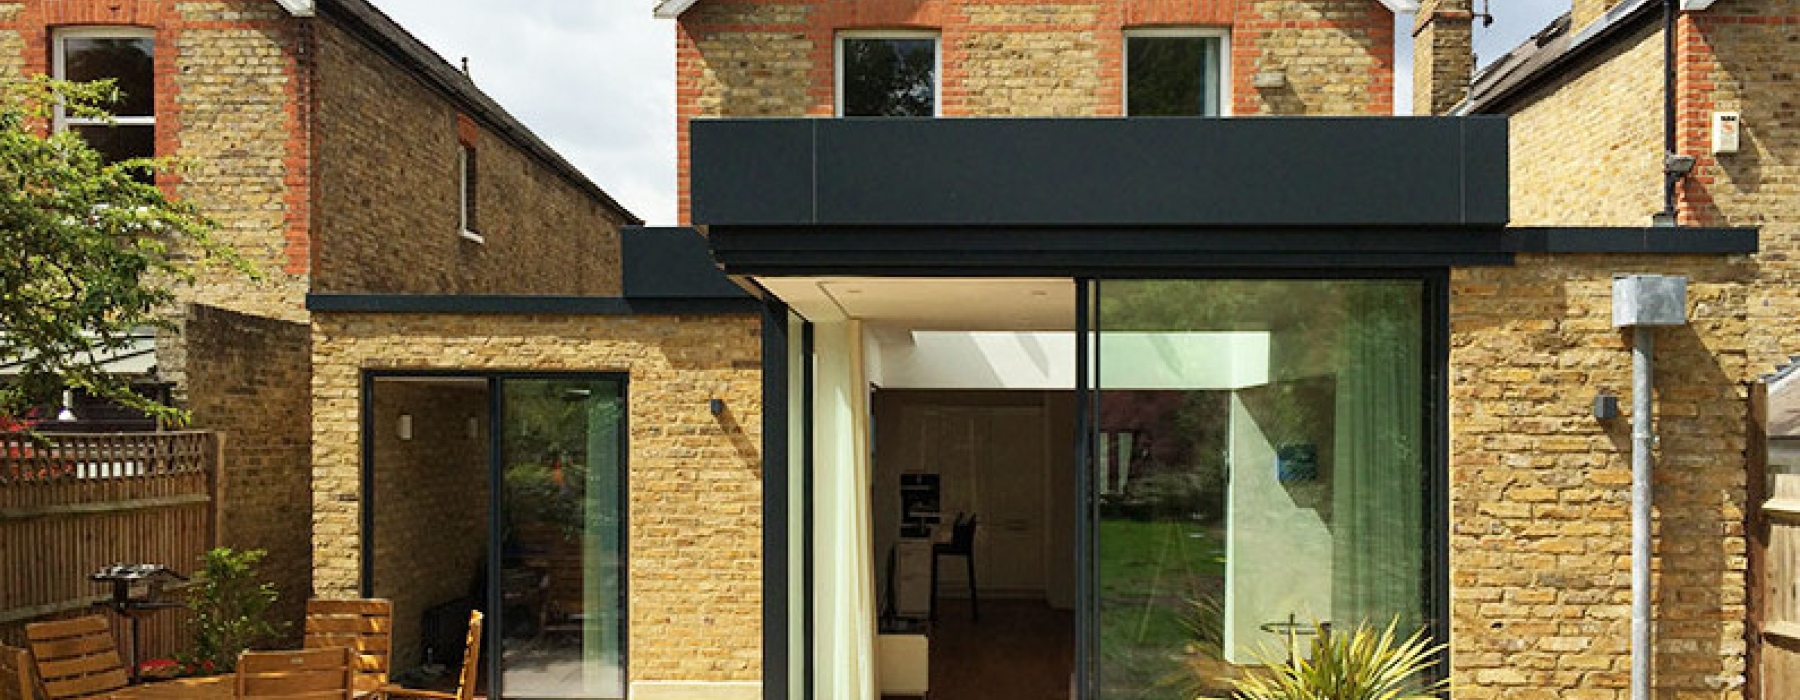 Richmond Park Floating Roof Extension Projects Iq Glass